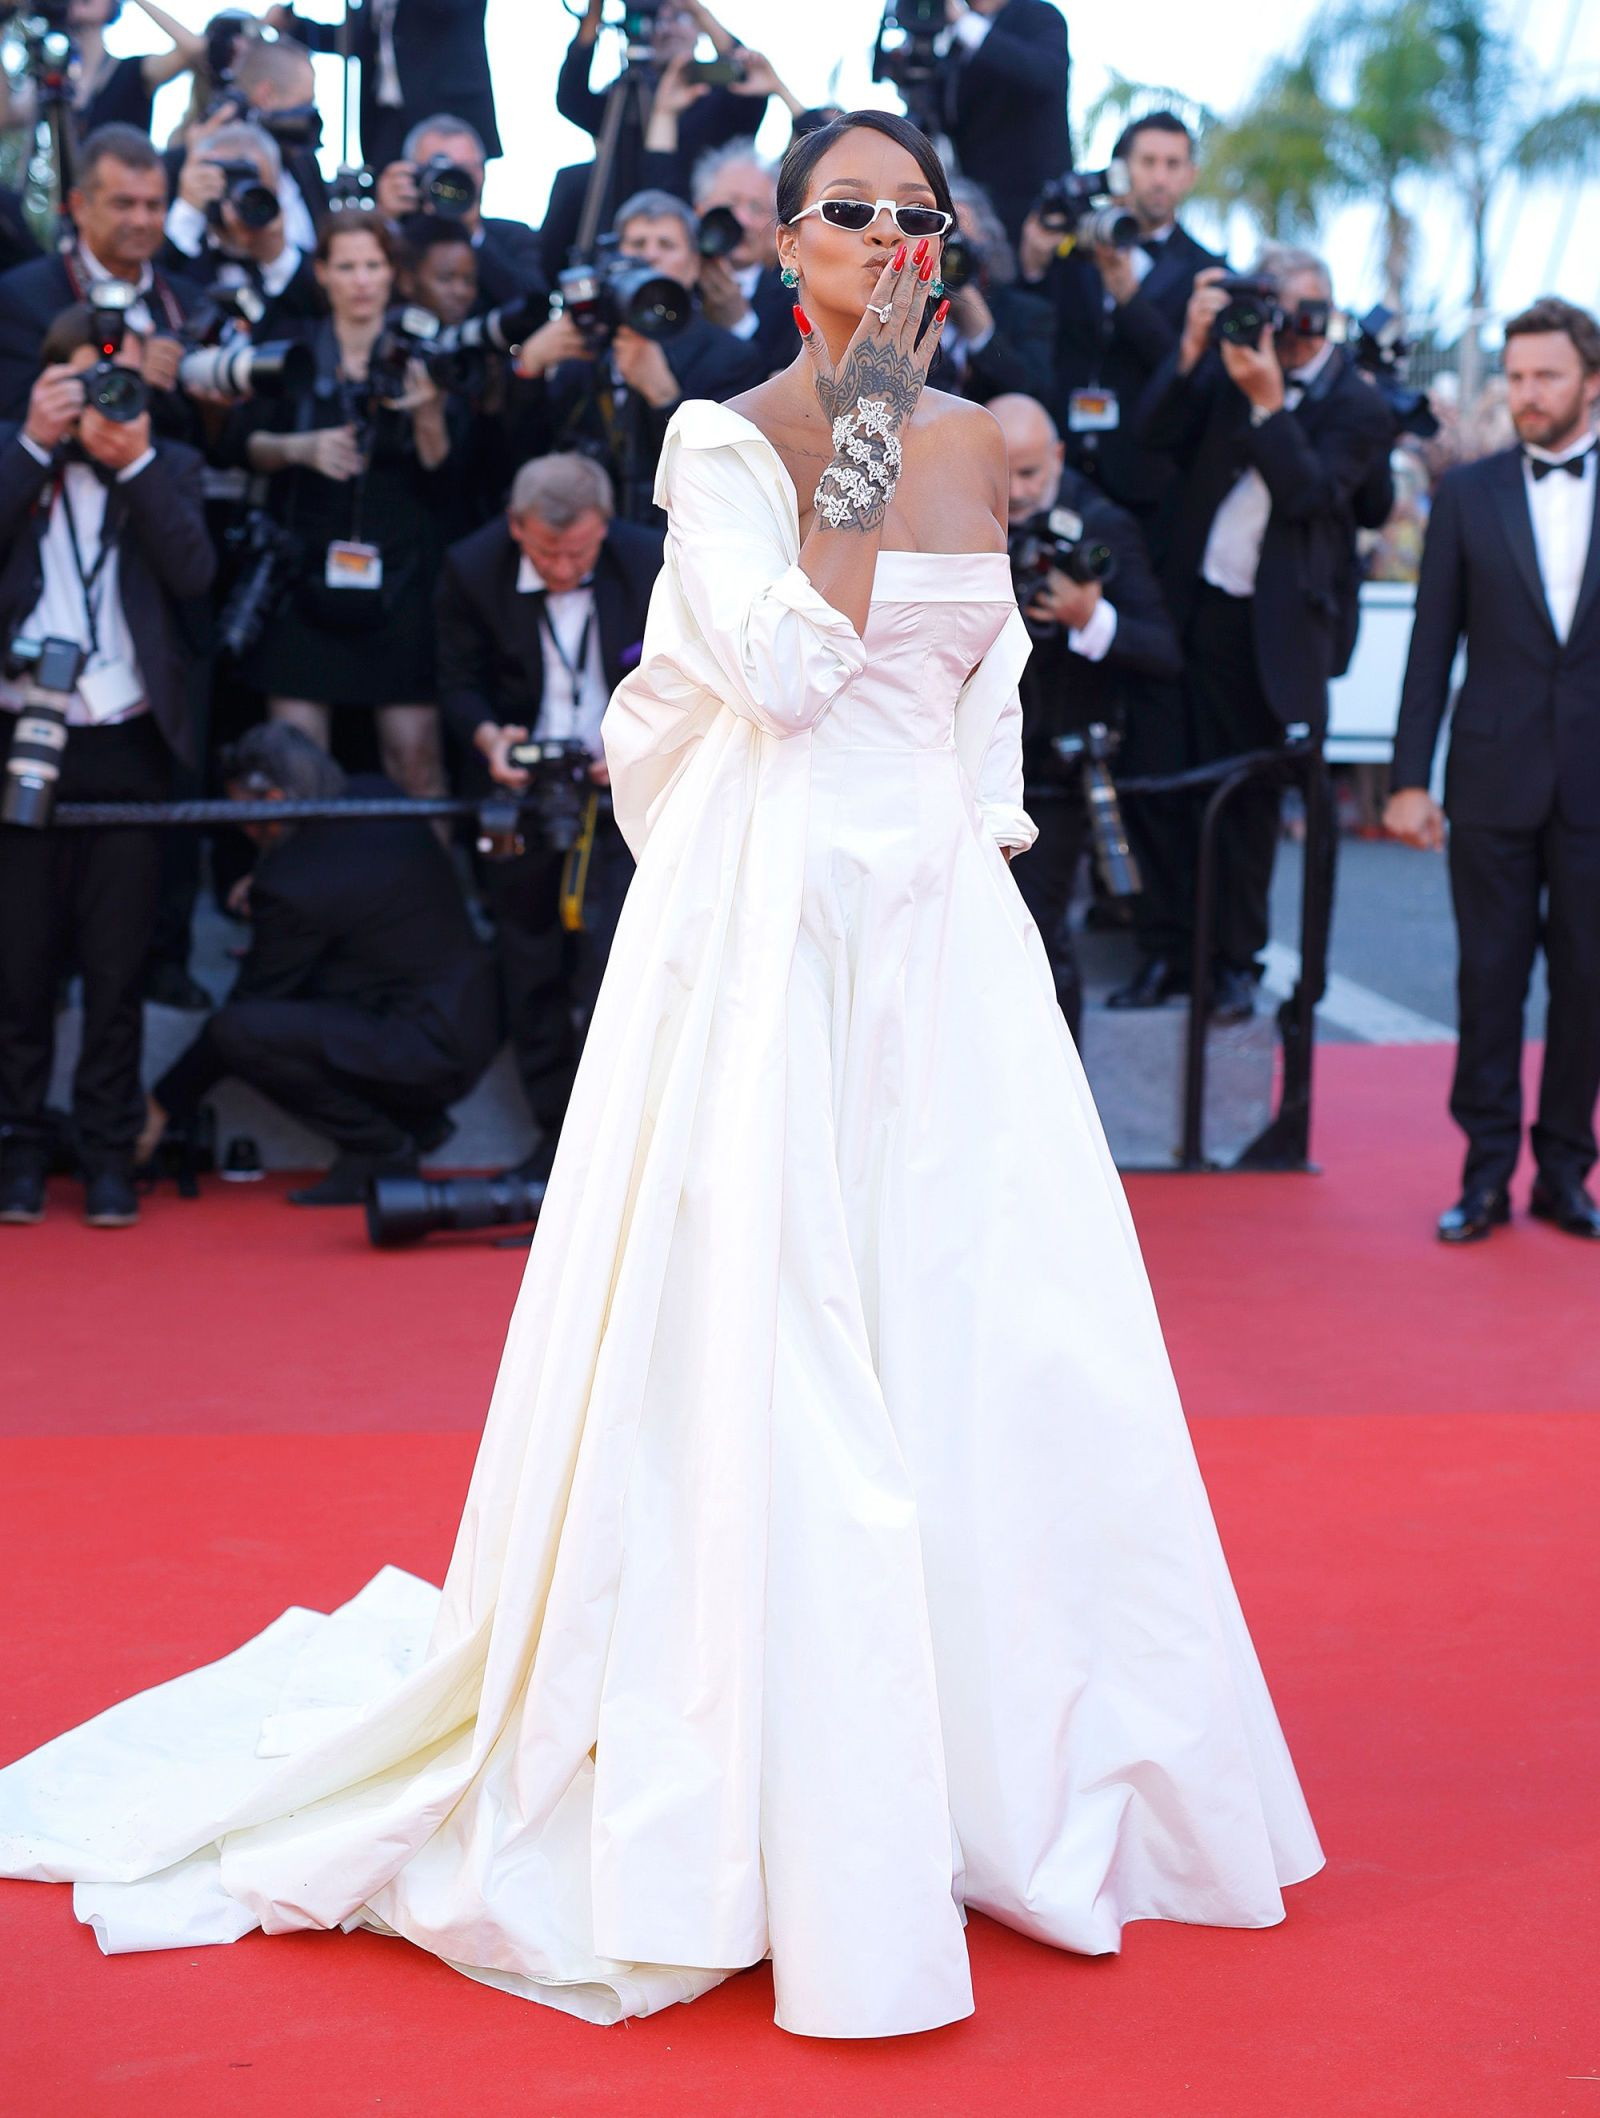 The Best Red Carpet Looks From the 2017 Cannes Film Festival ...